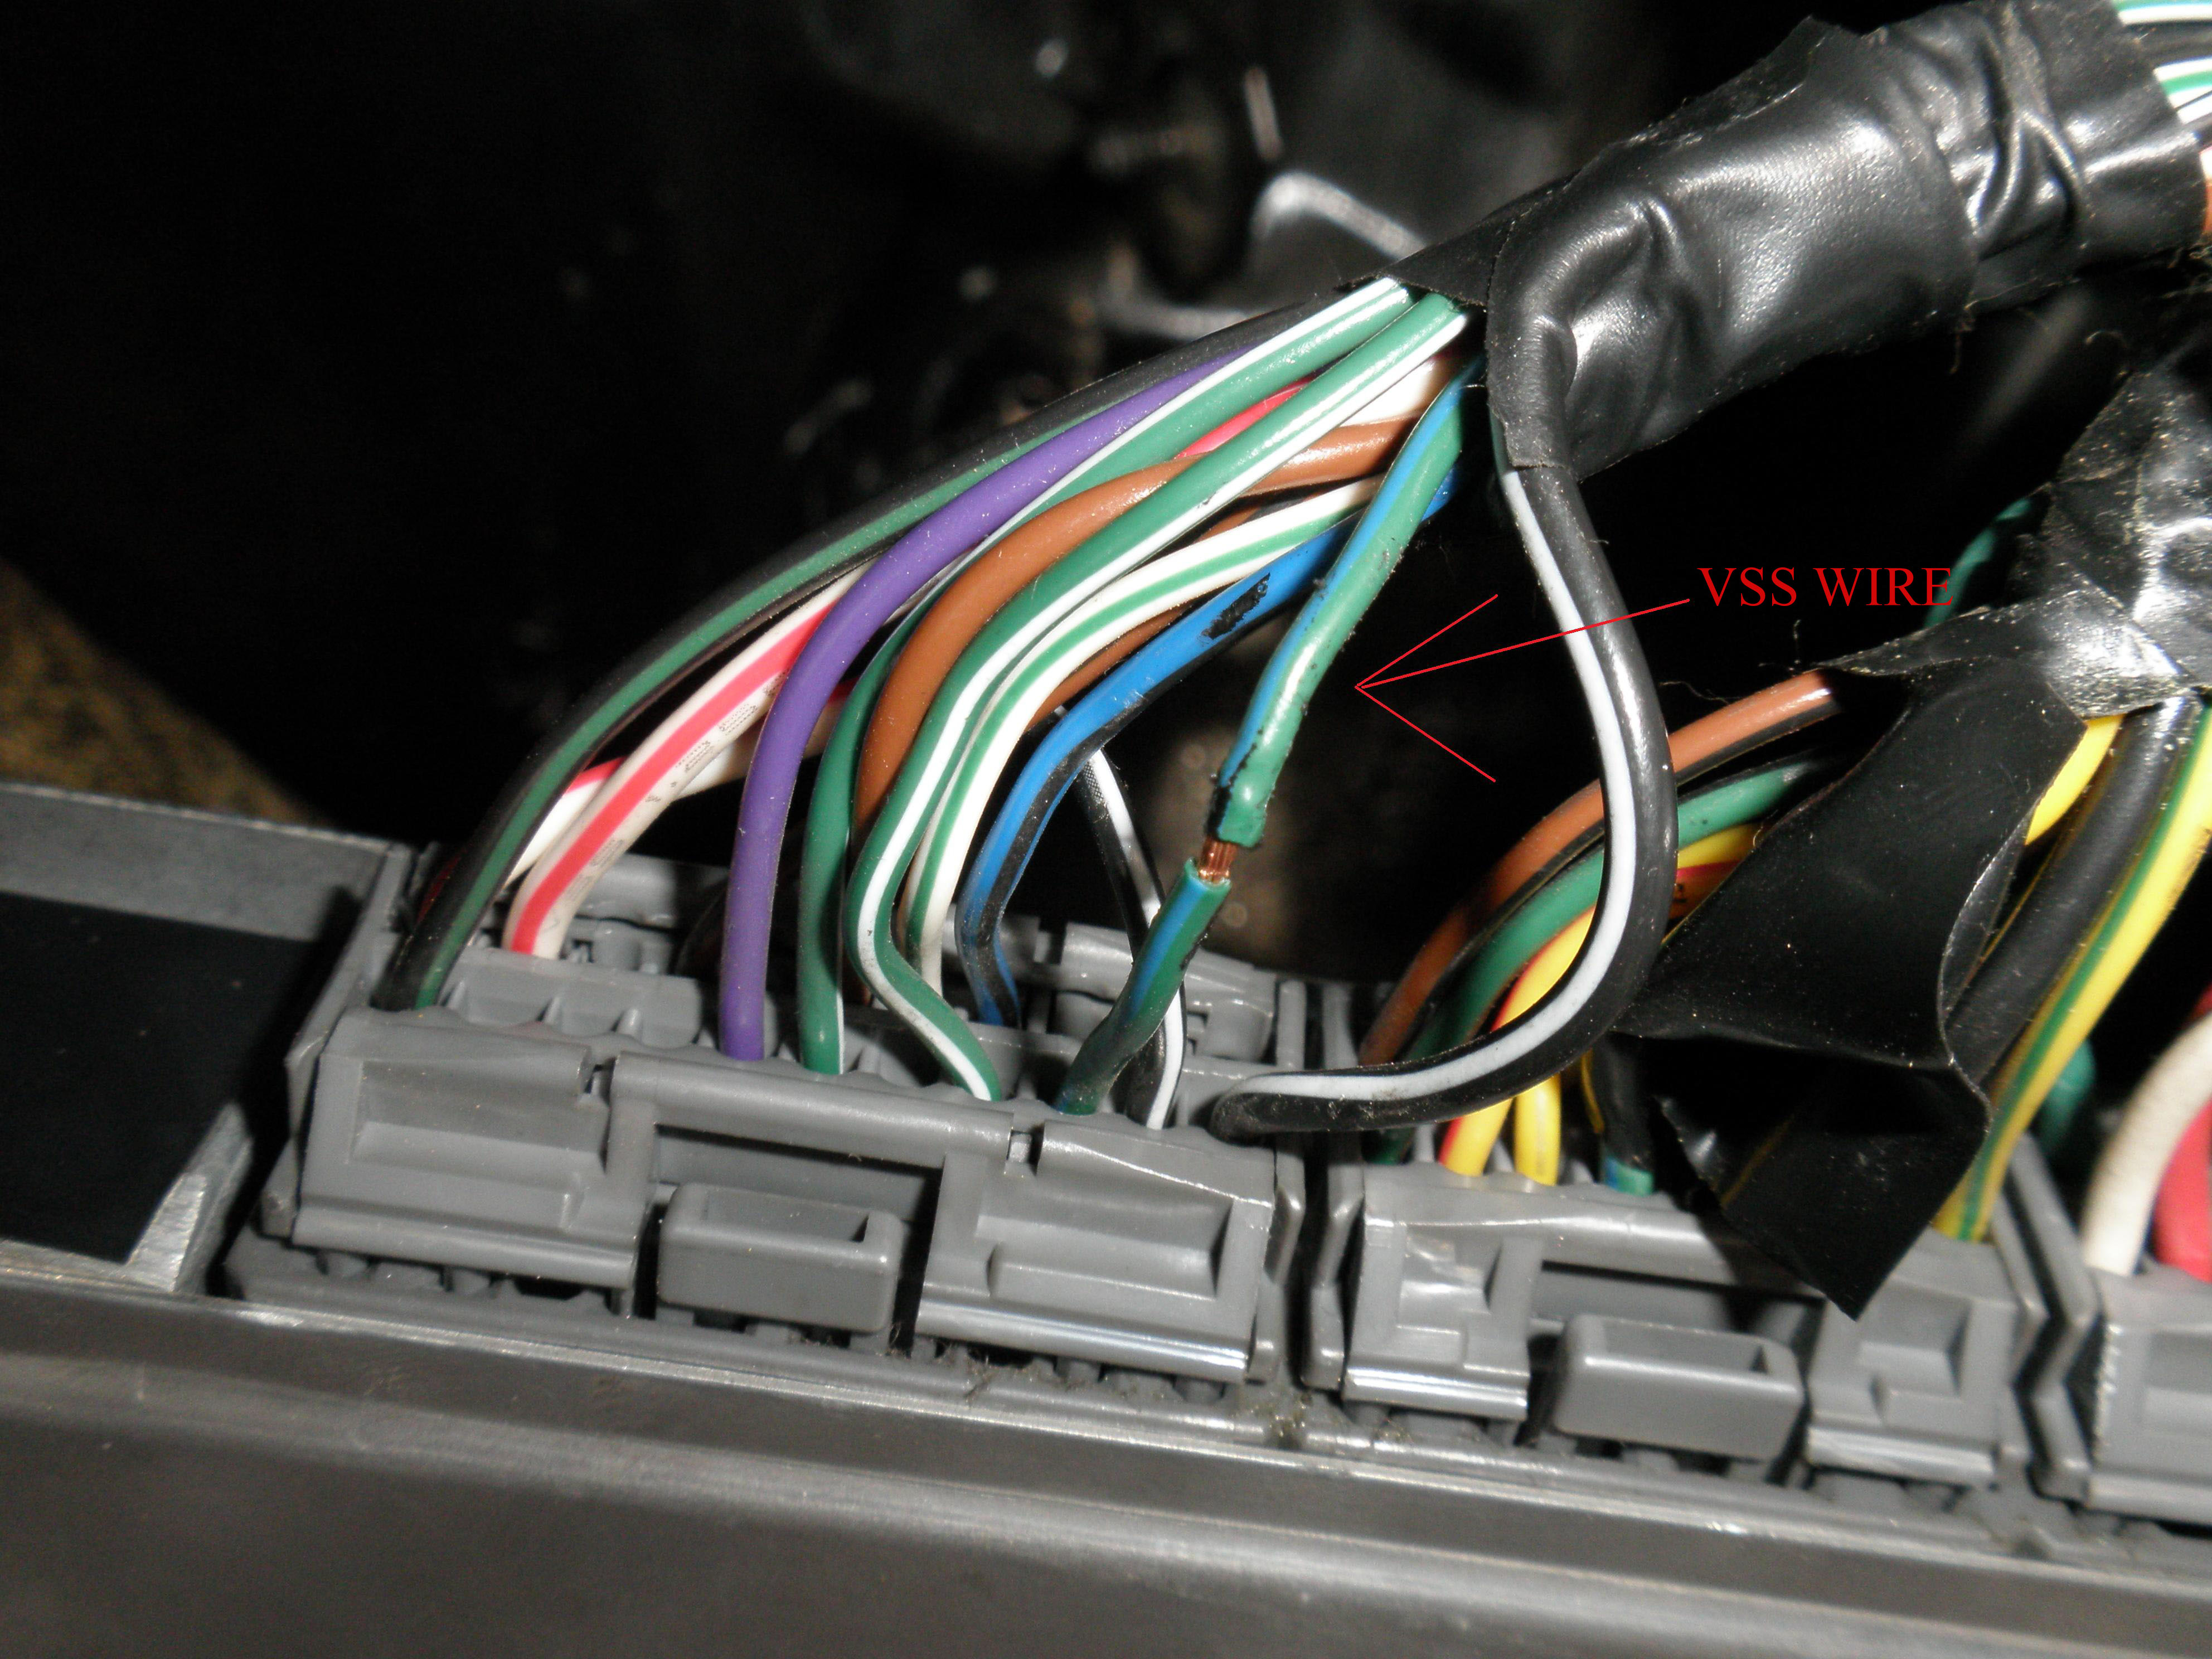 92 4runner Vss Vehicle Specific Wiring Wire Diagram Post 15732 12872762111258 Thumb